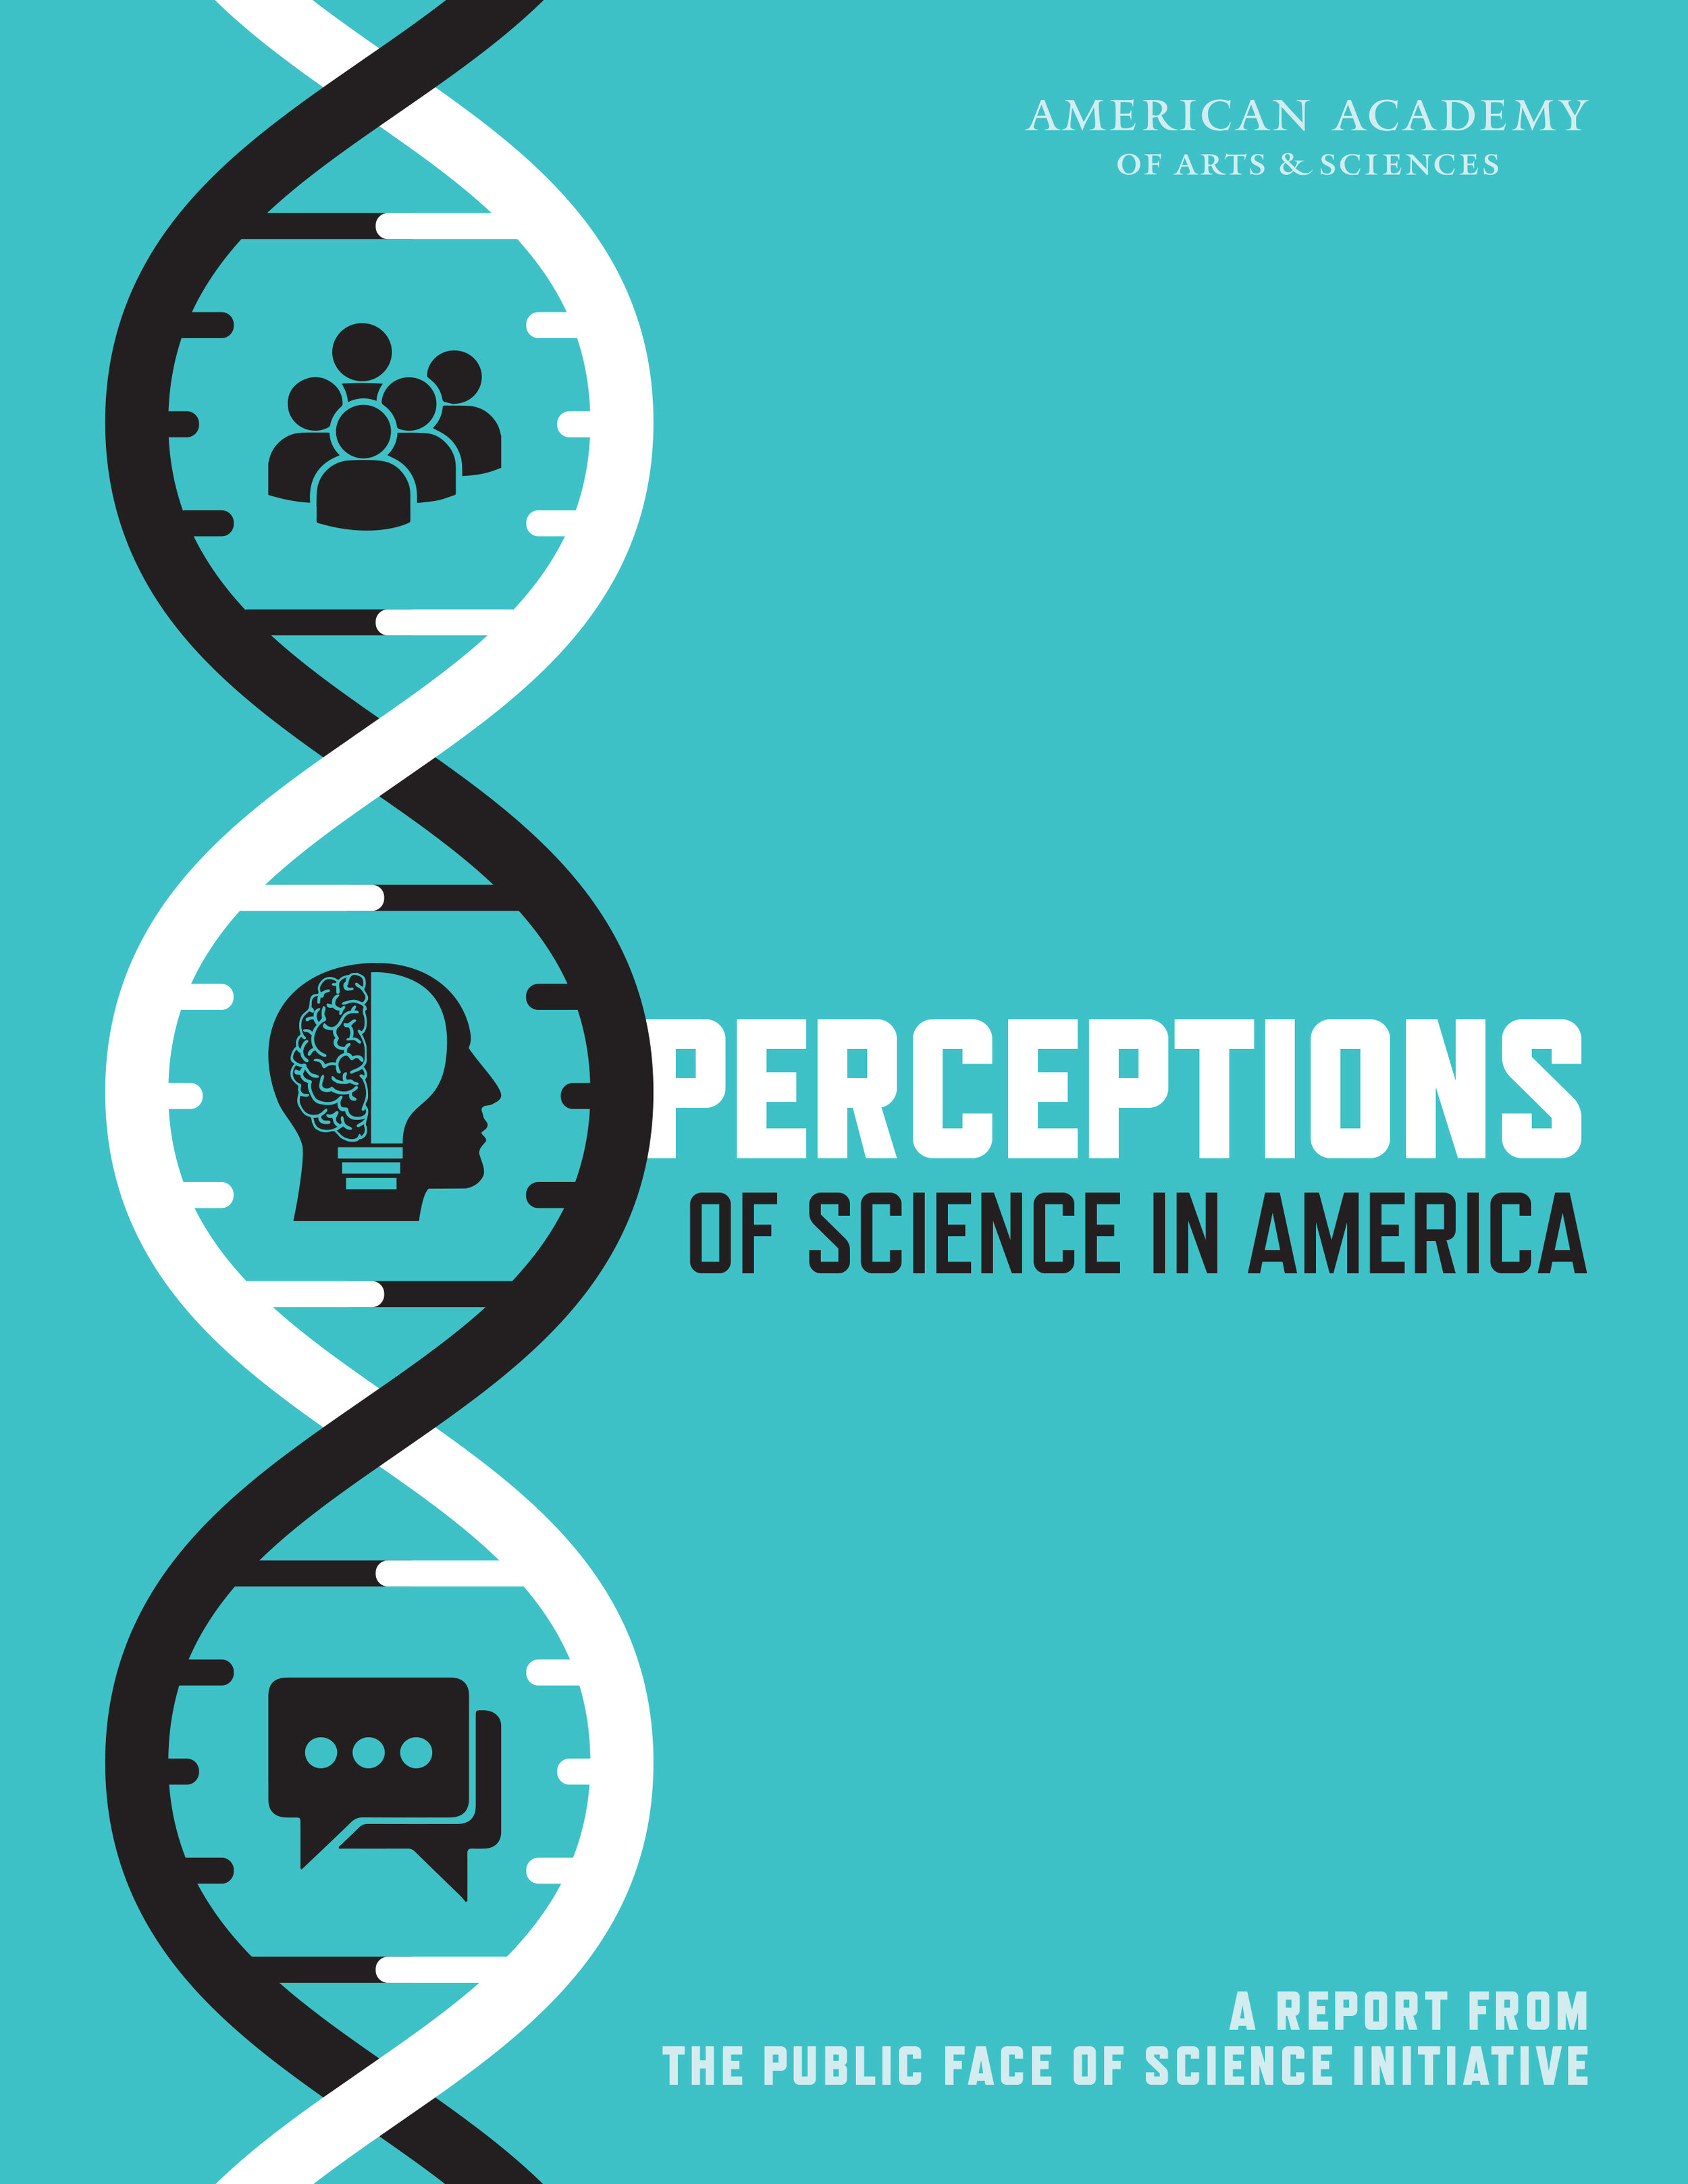 Perceptions of Science in America